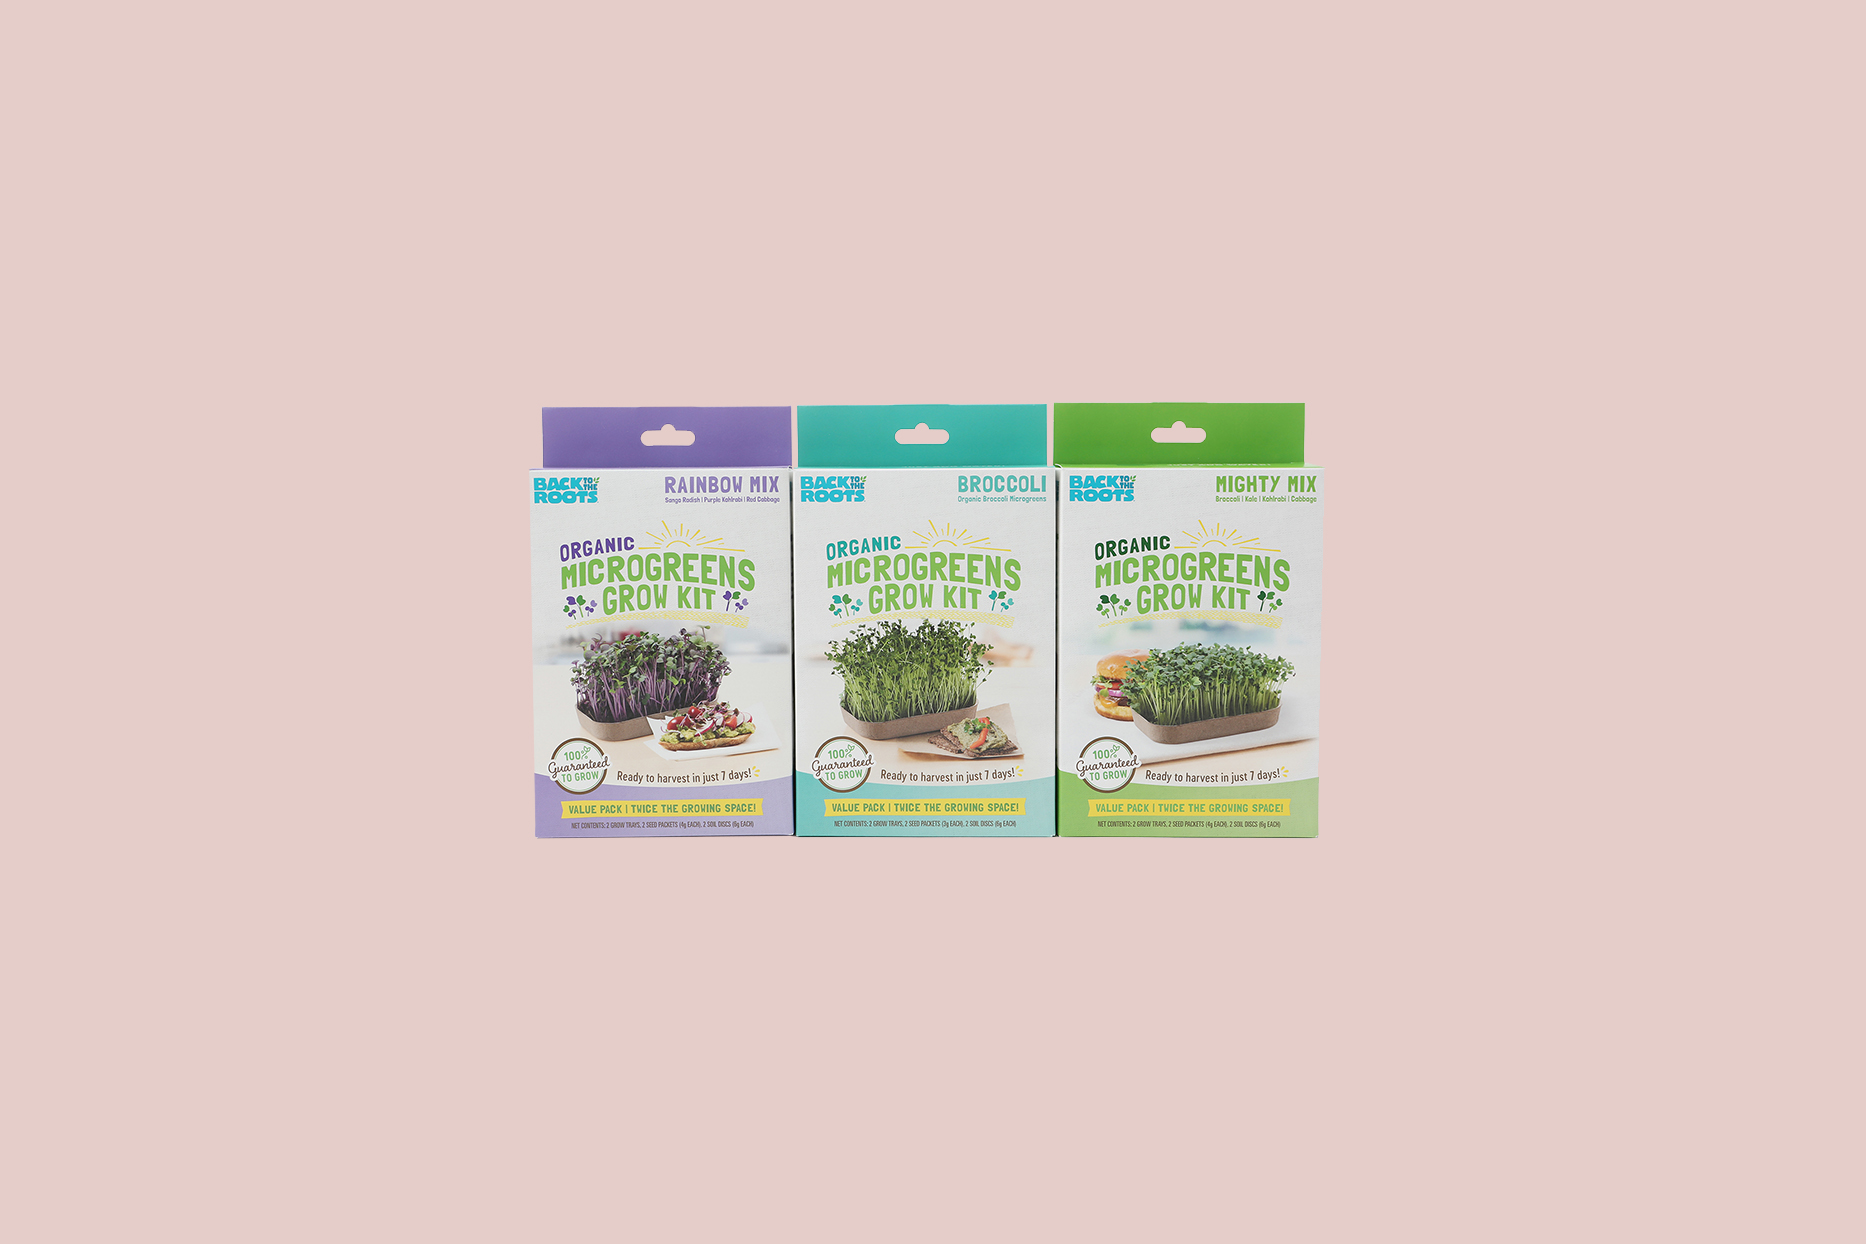 Back to the Roots Organic Microgreens Kit